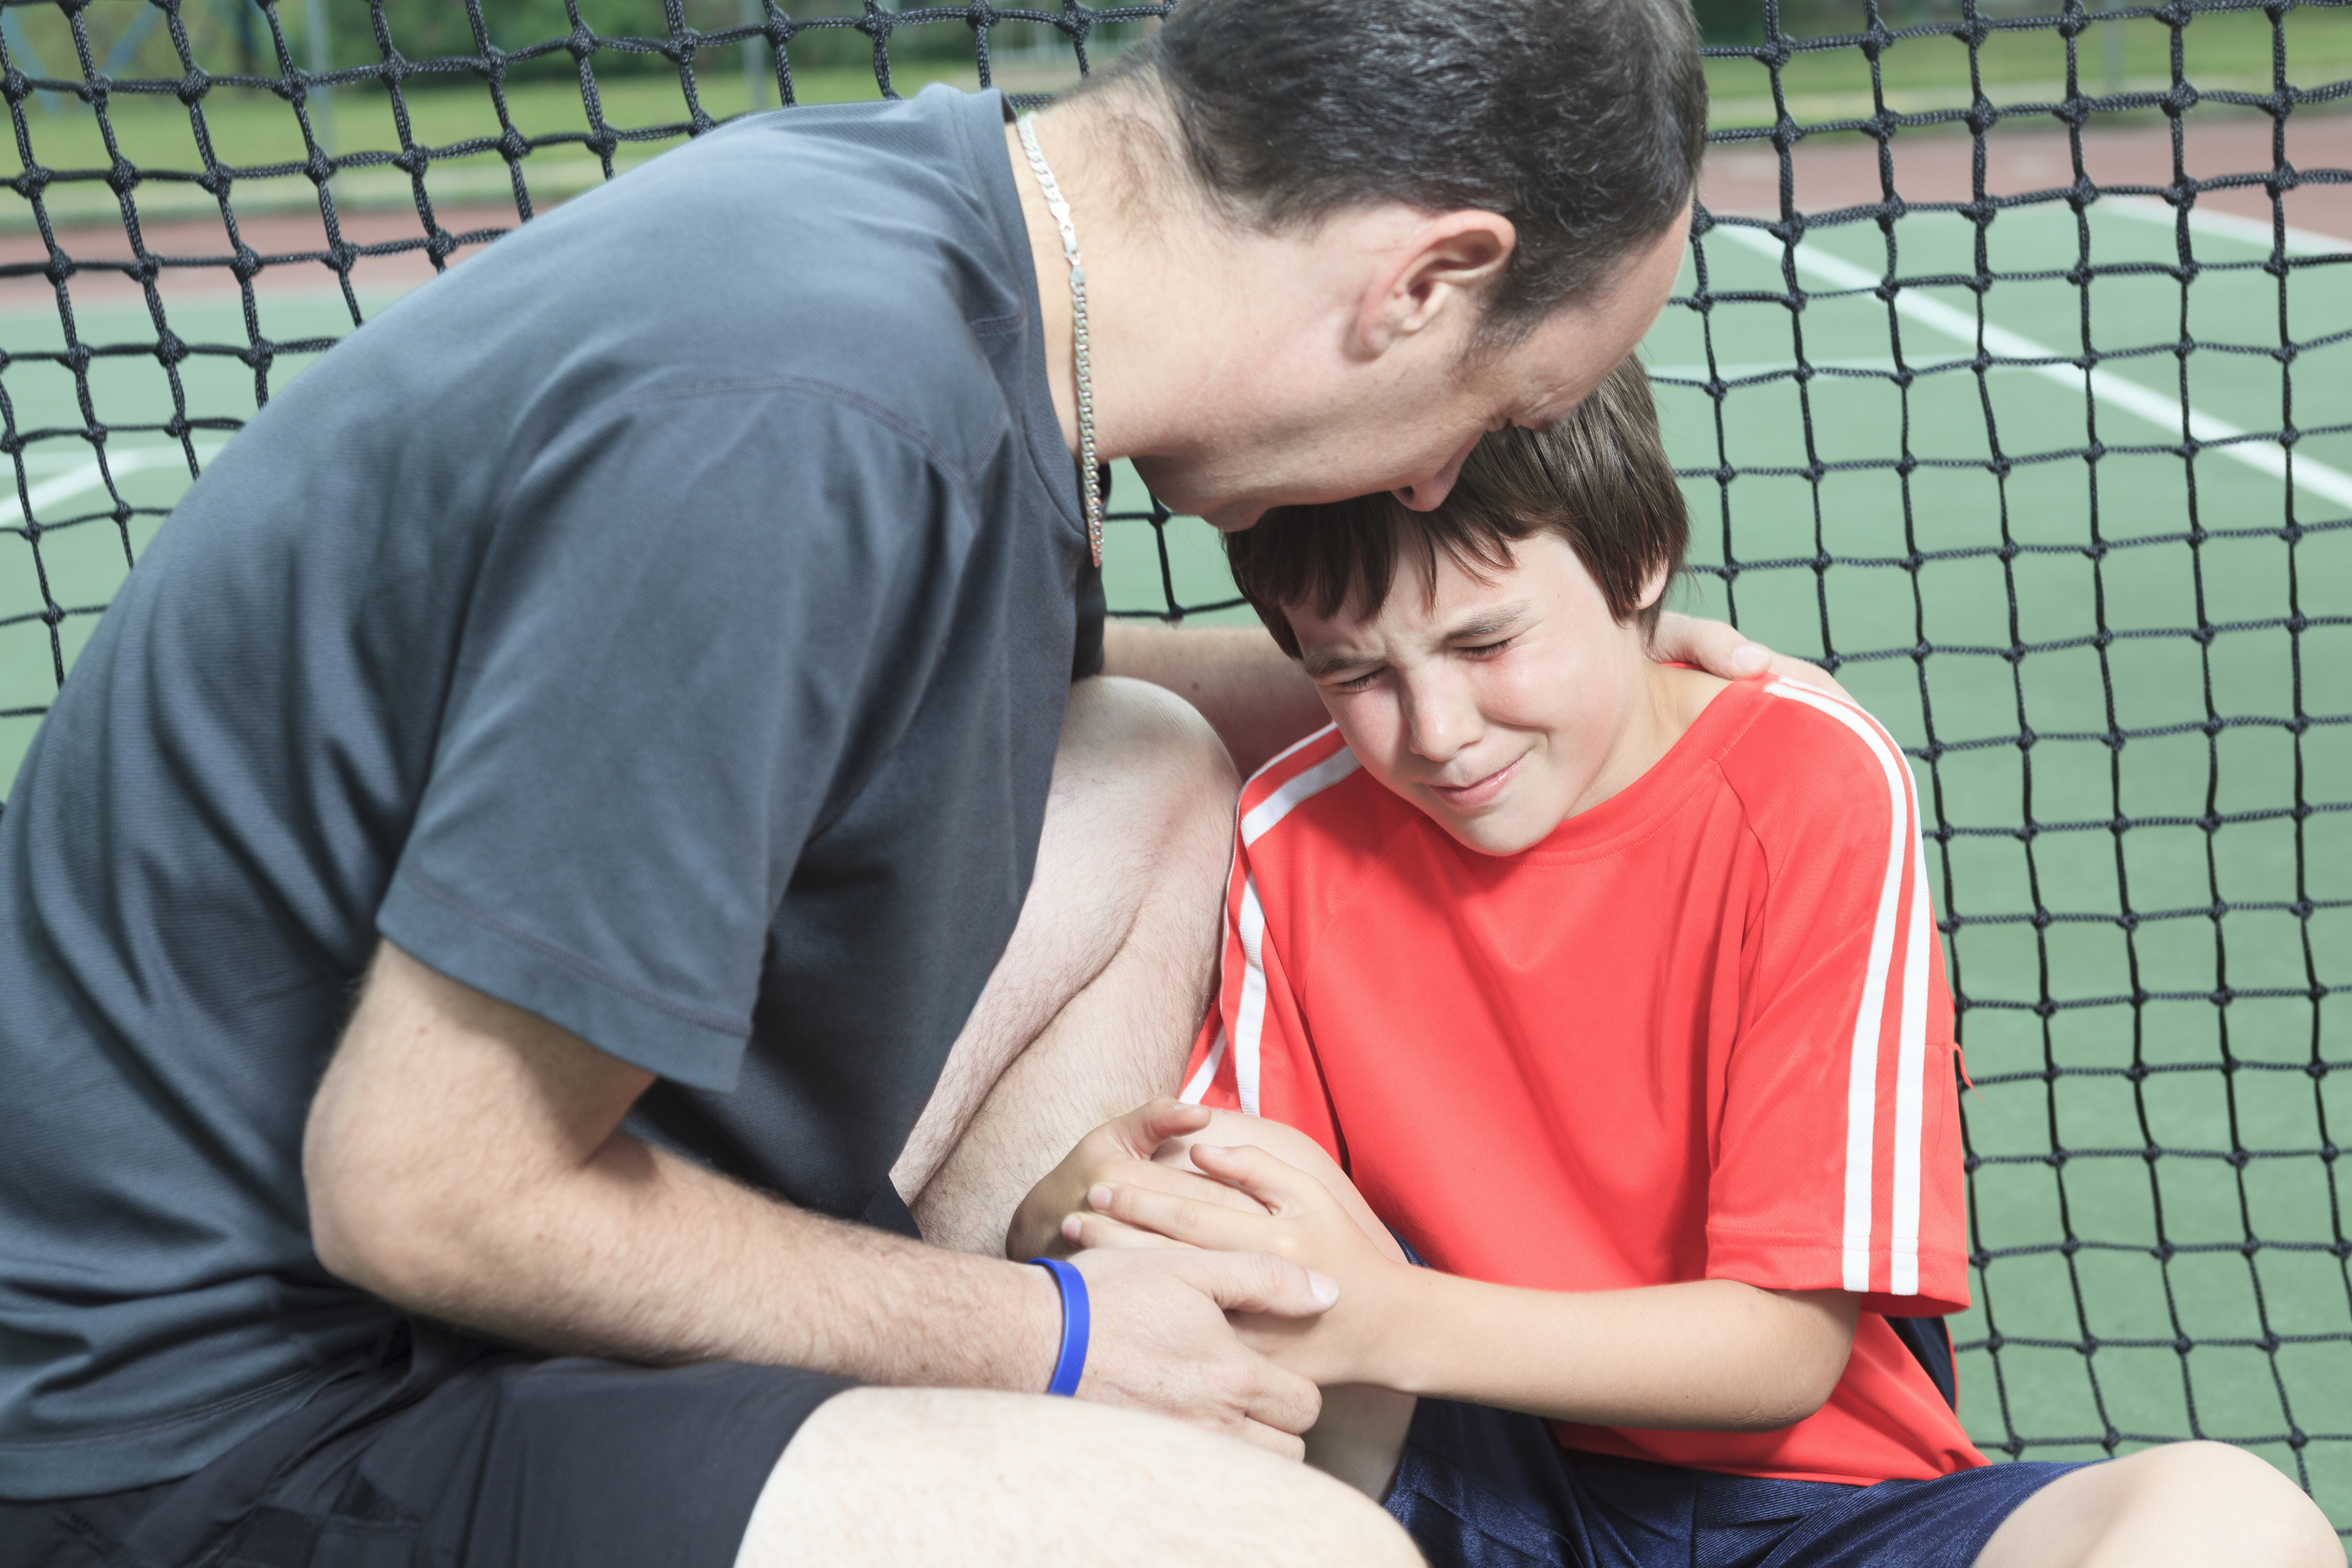 Treating youth in pain